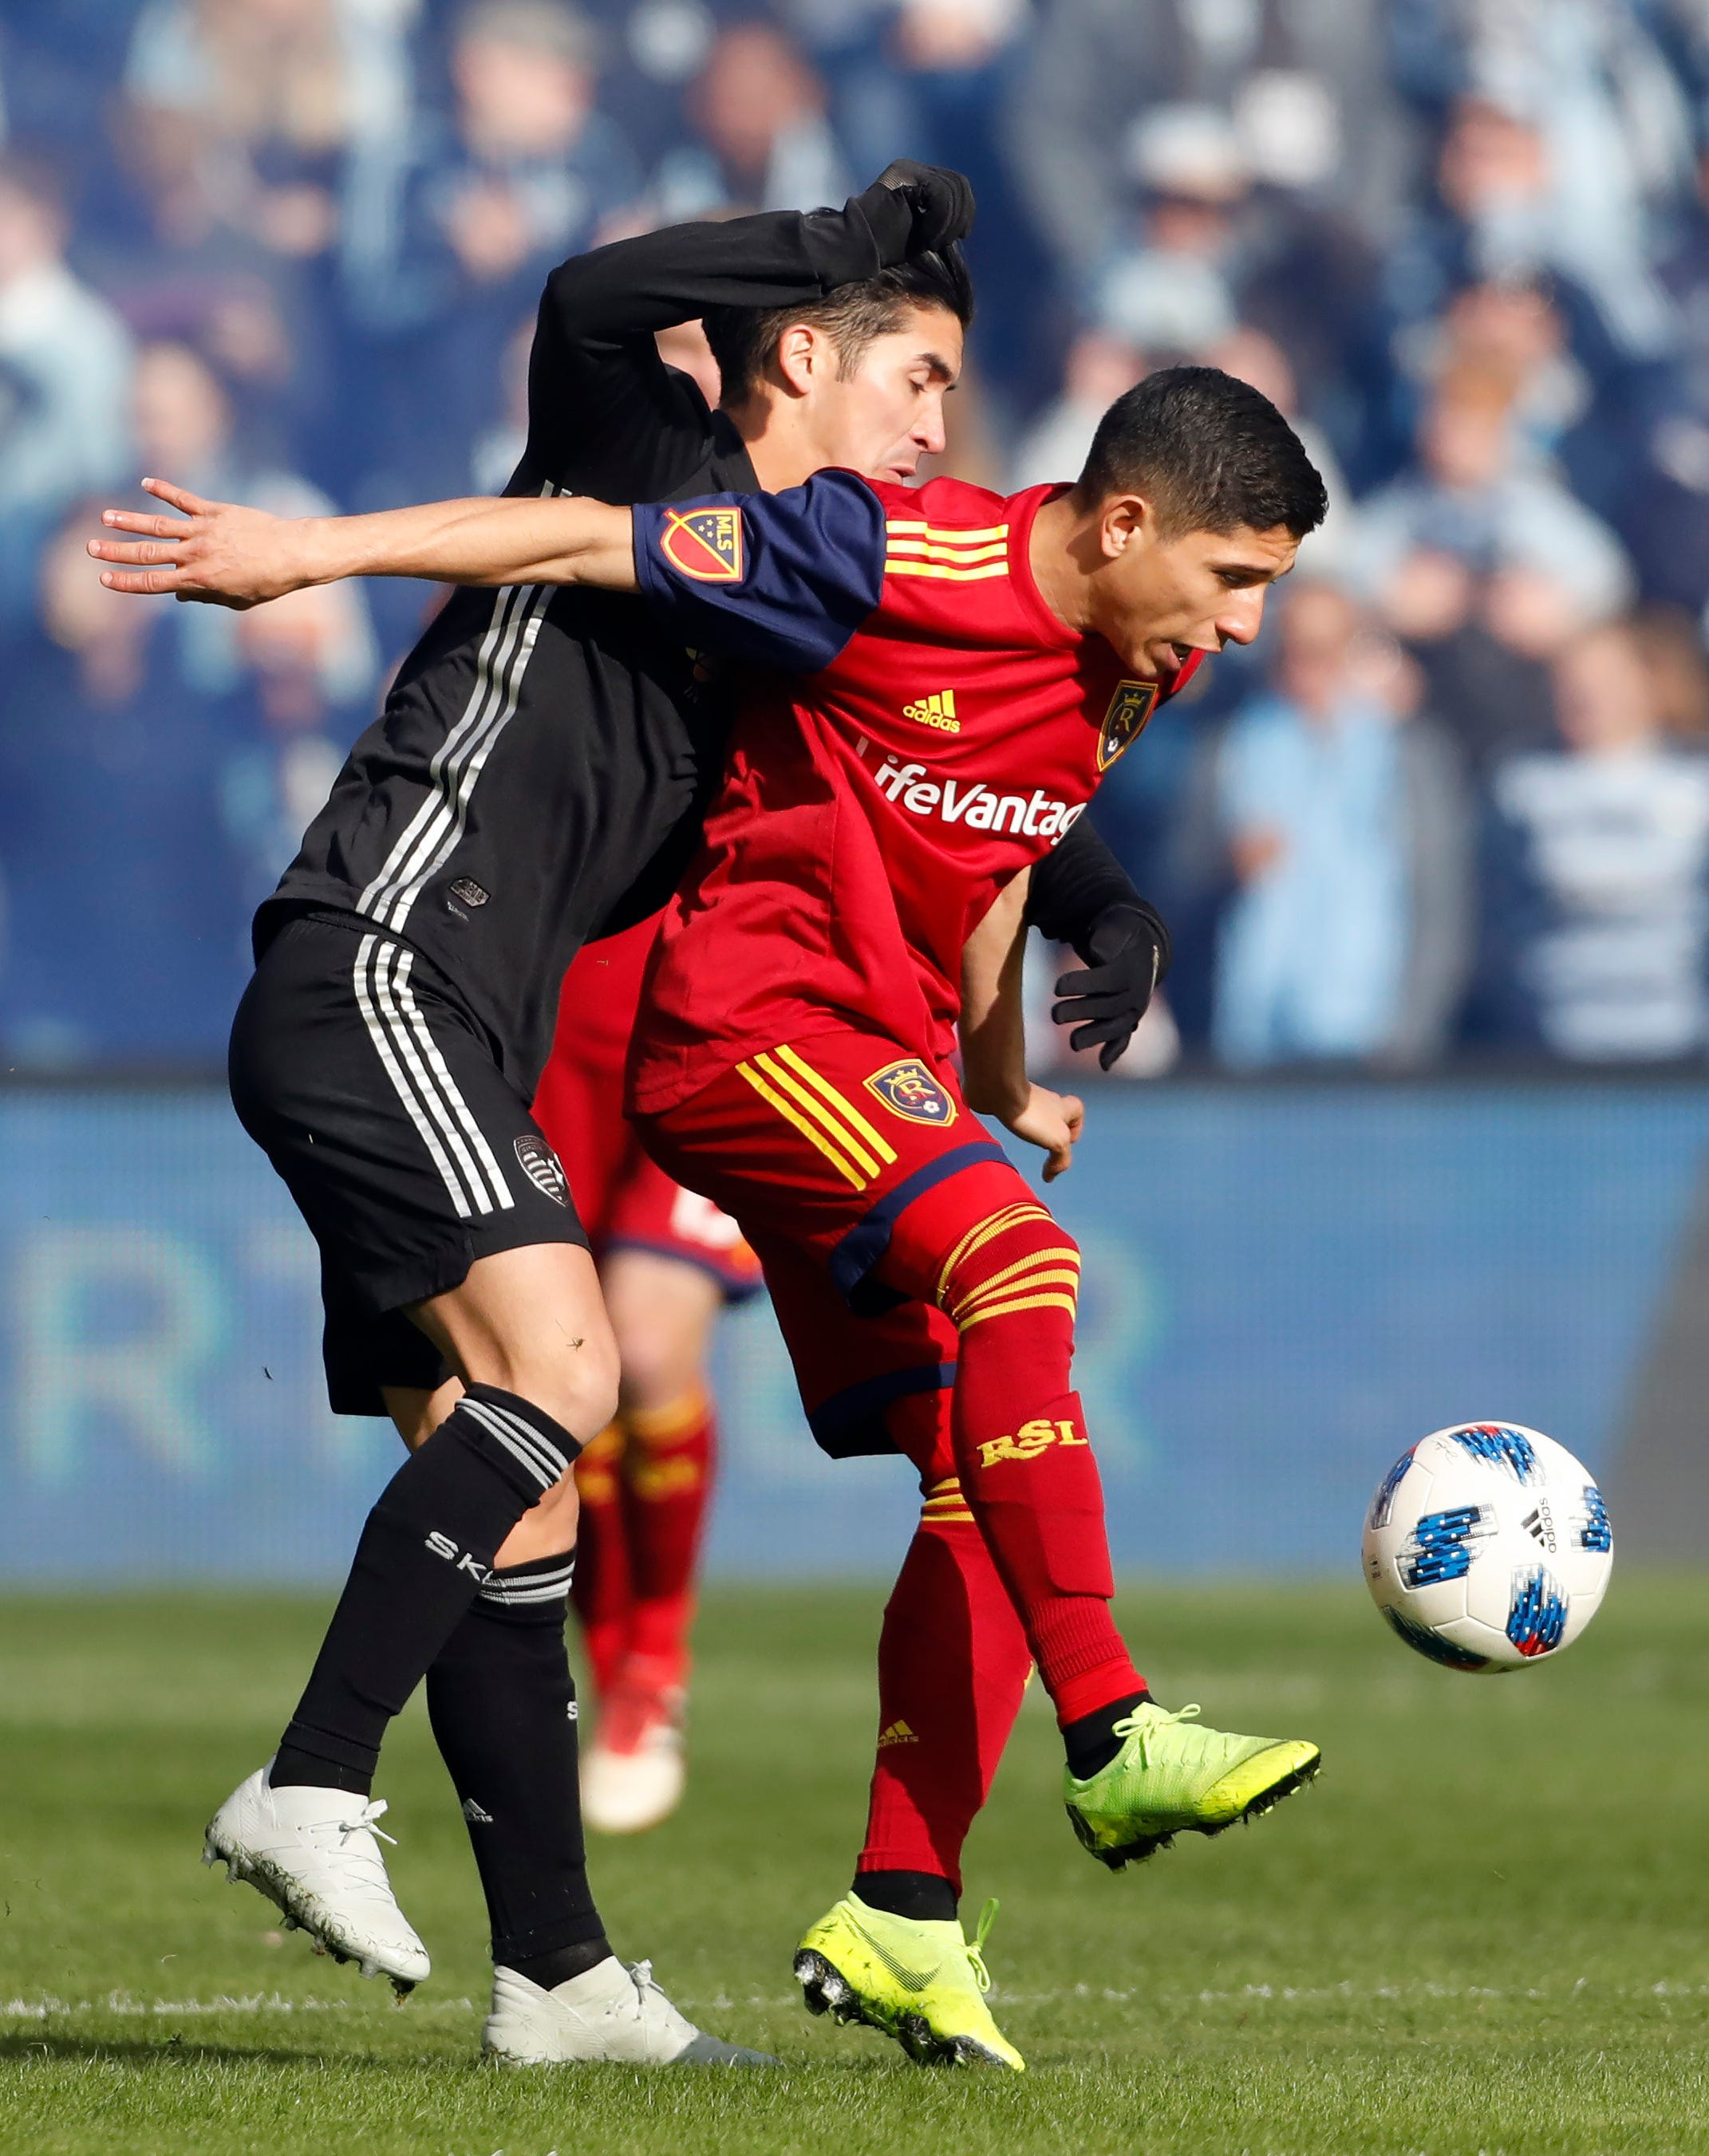 Sporting KC advances to face Portland in conference finals